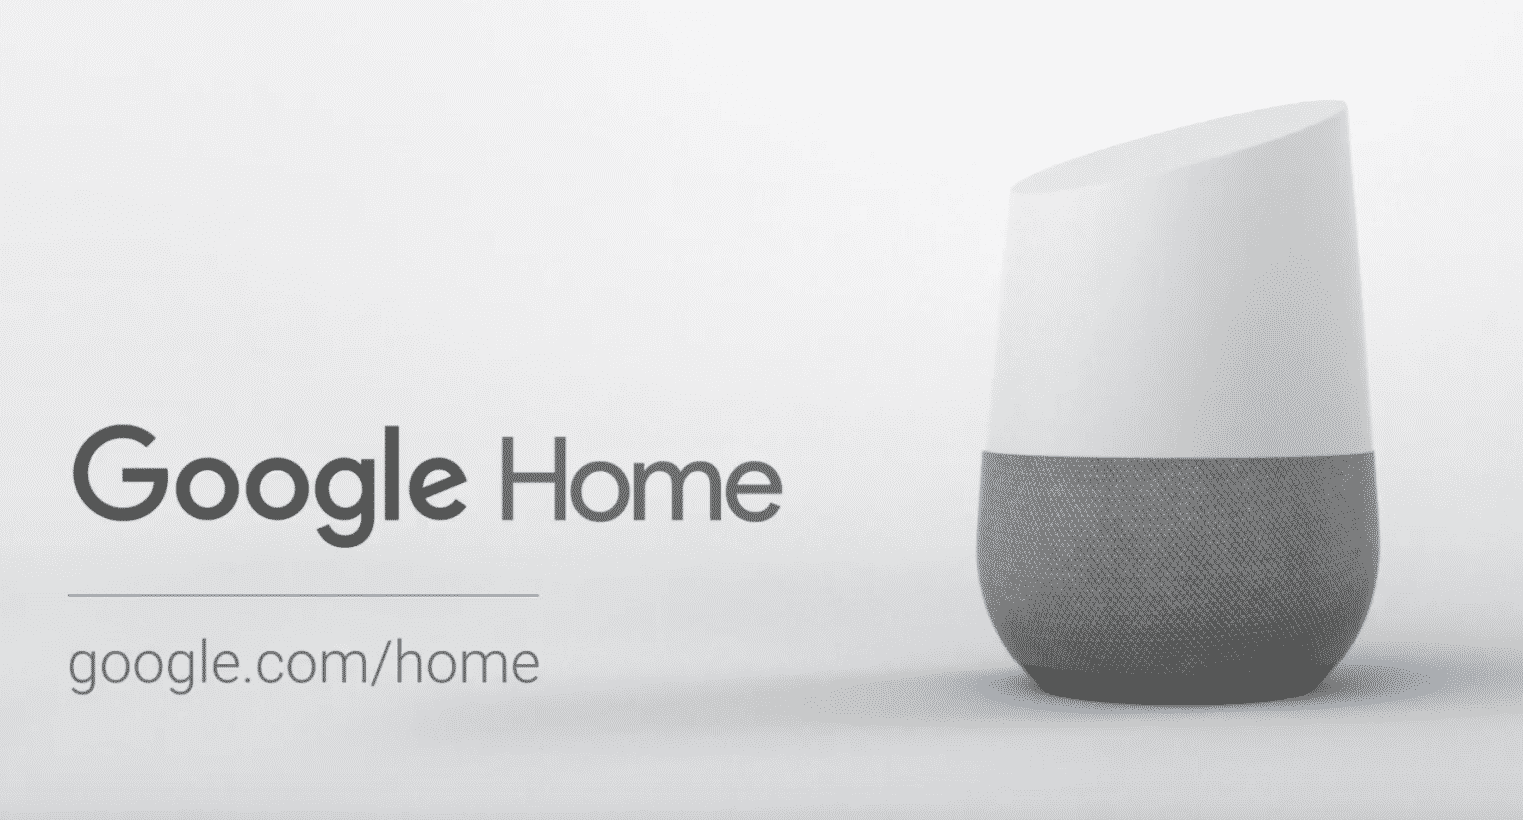 Google Home Integration and Programming